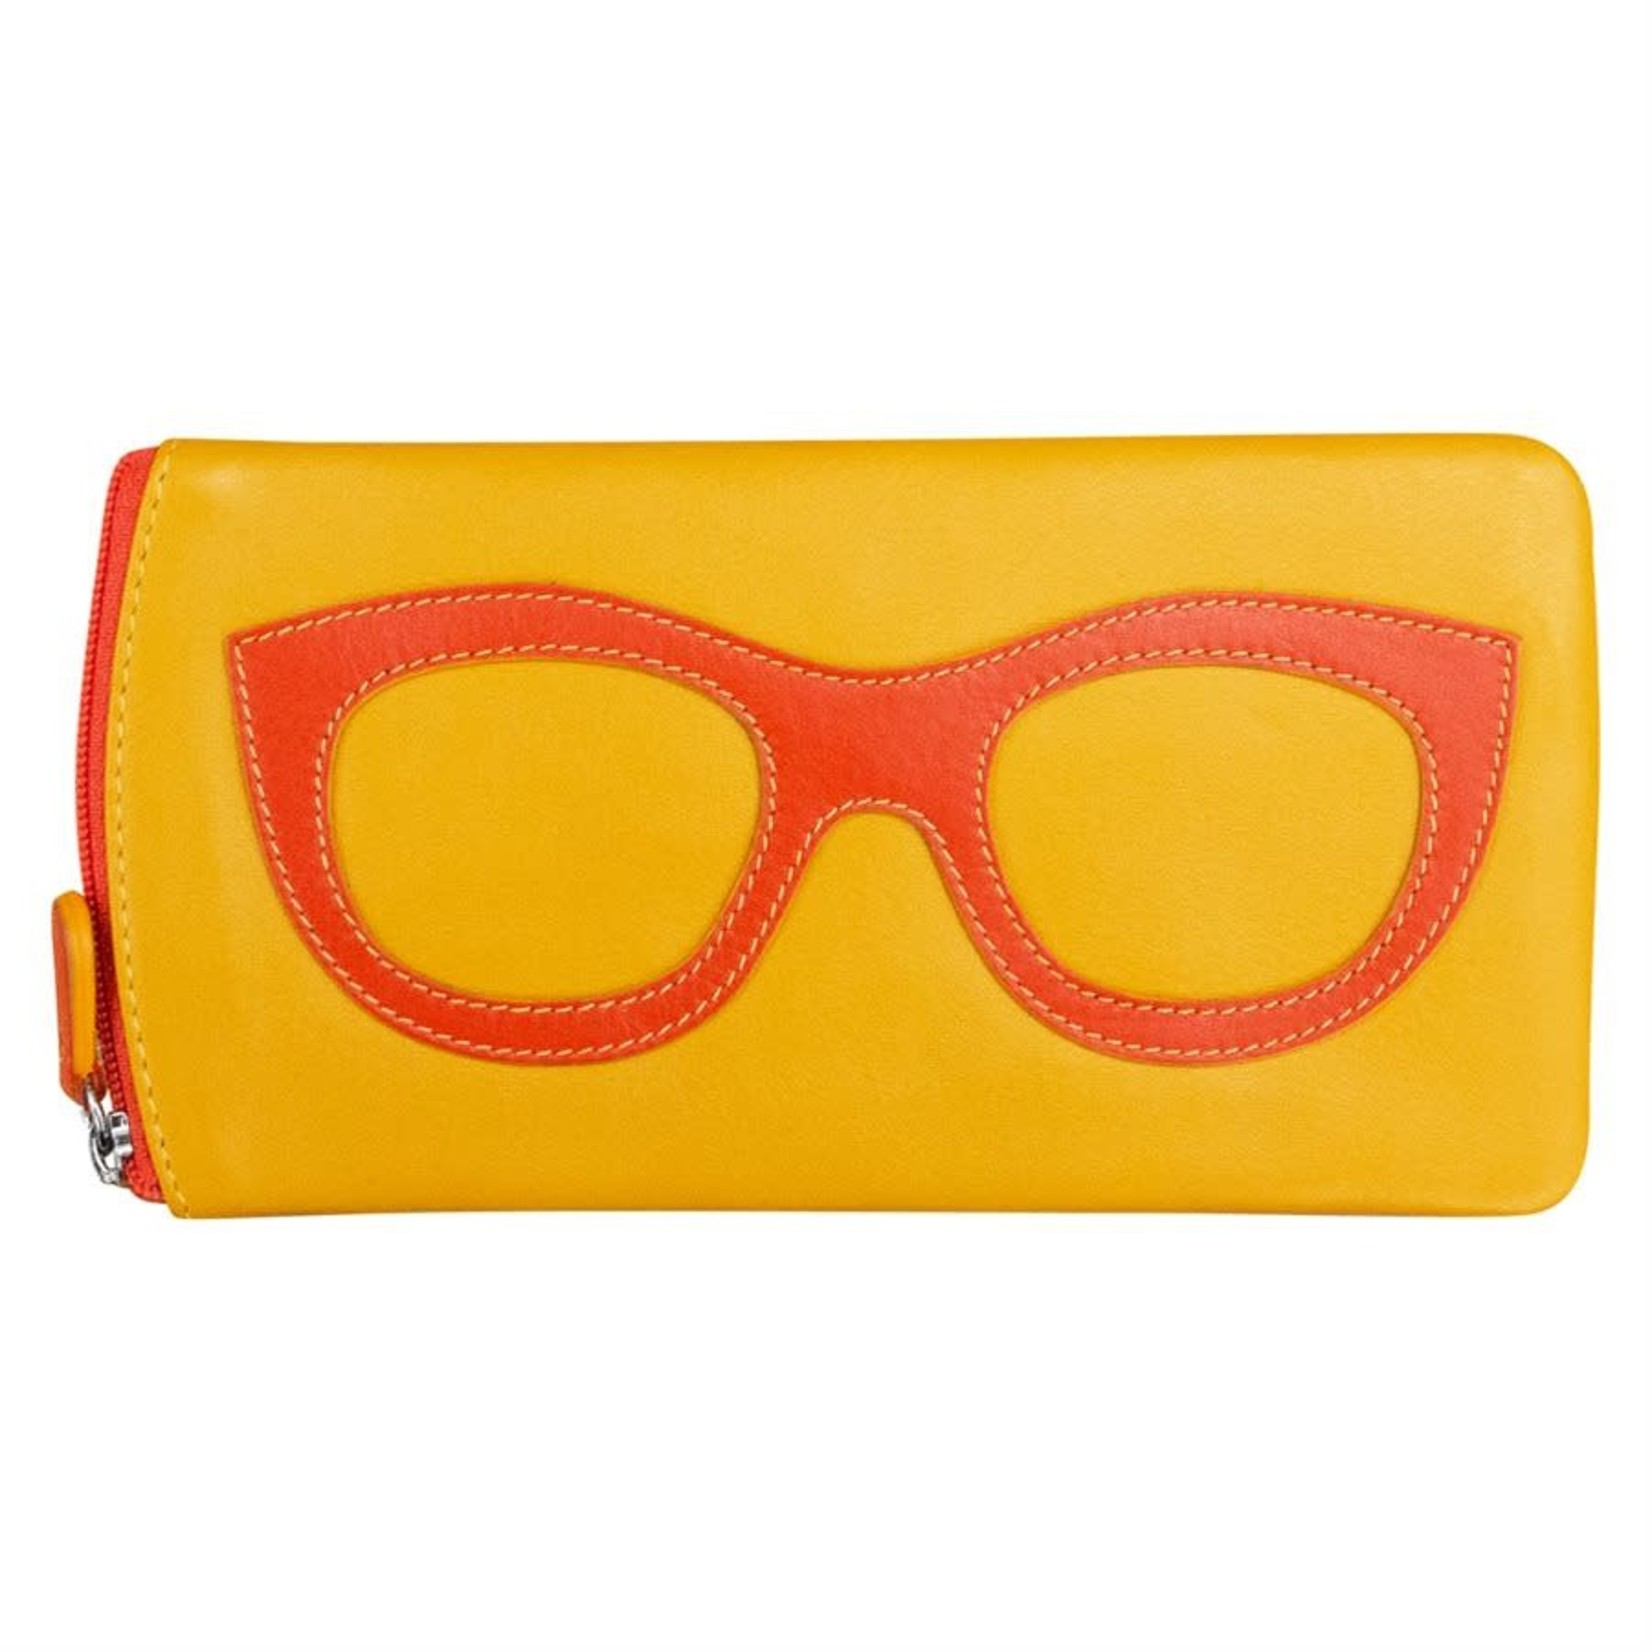 Leather Handbags and Accessories 6462 Yellow/Orange - Leather Eyeglass Case